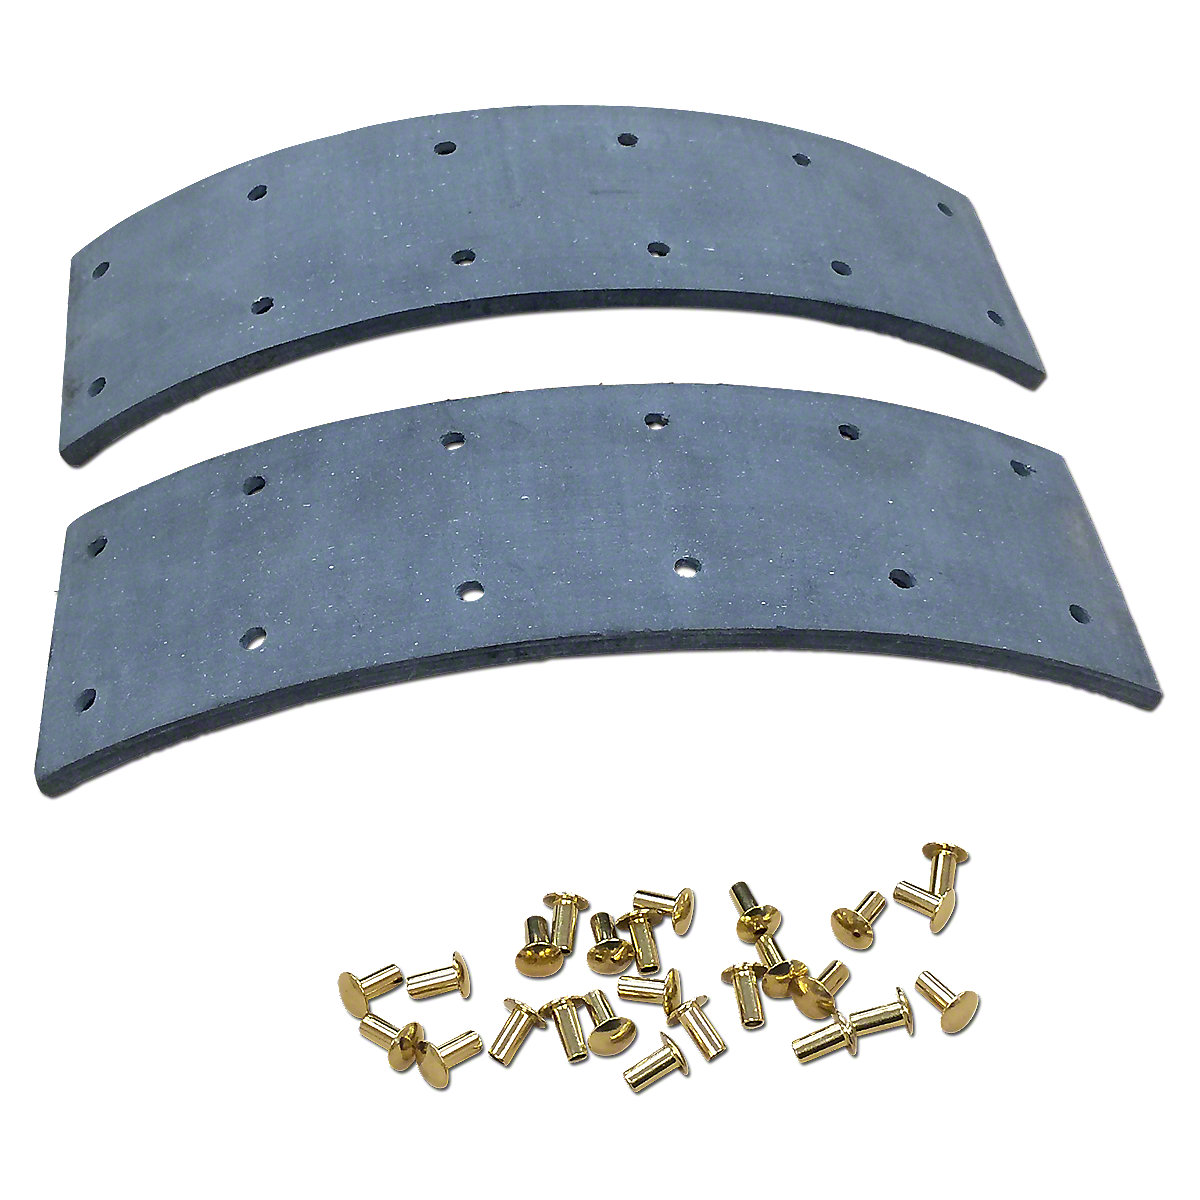 Brake Bands And Lining : Acs brake lining for band